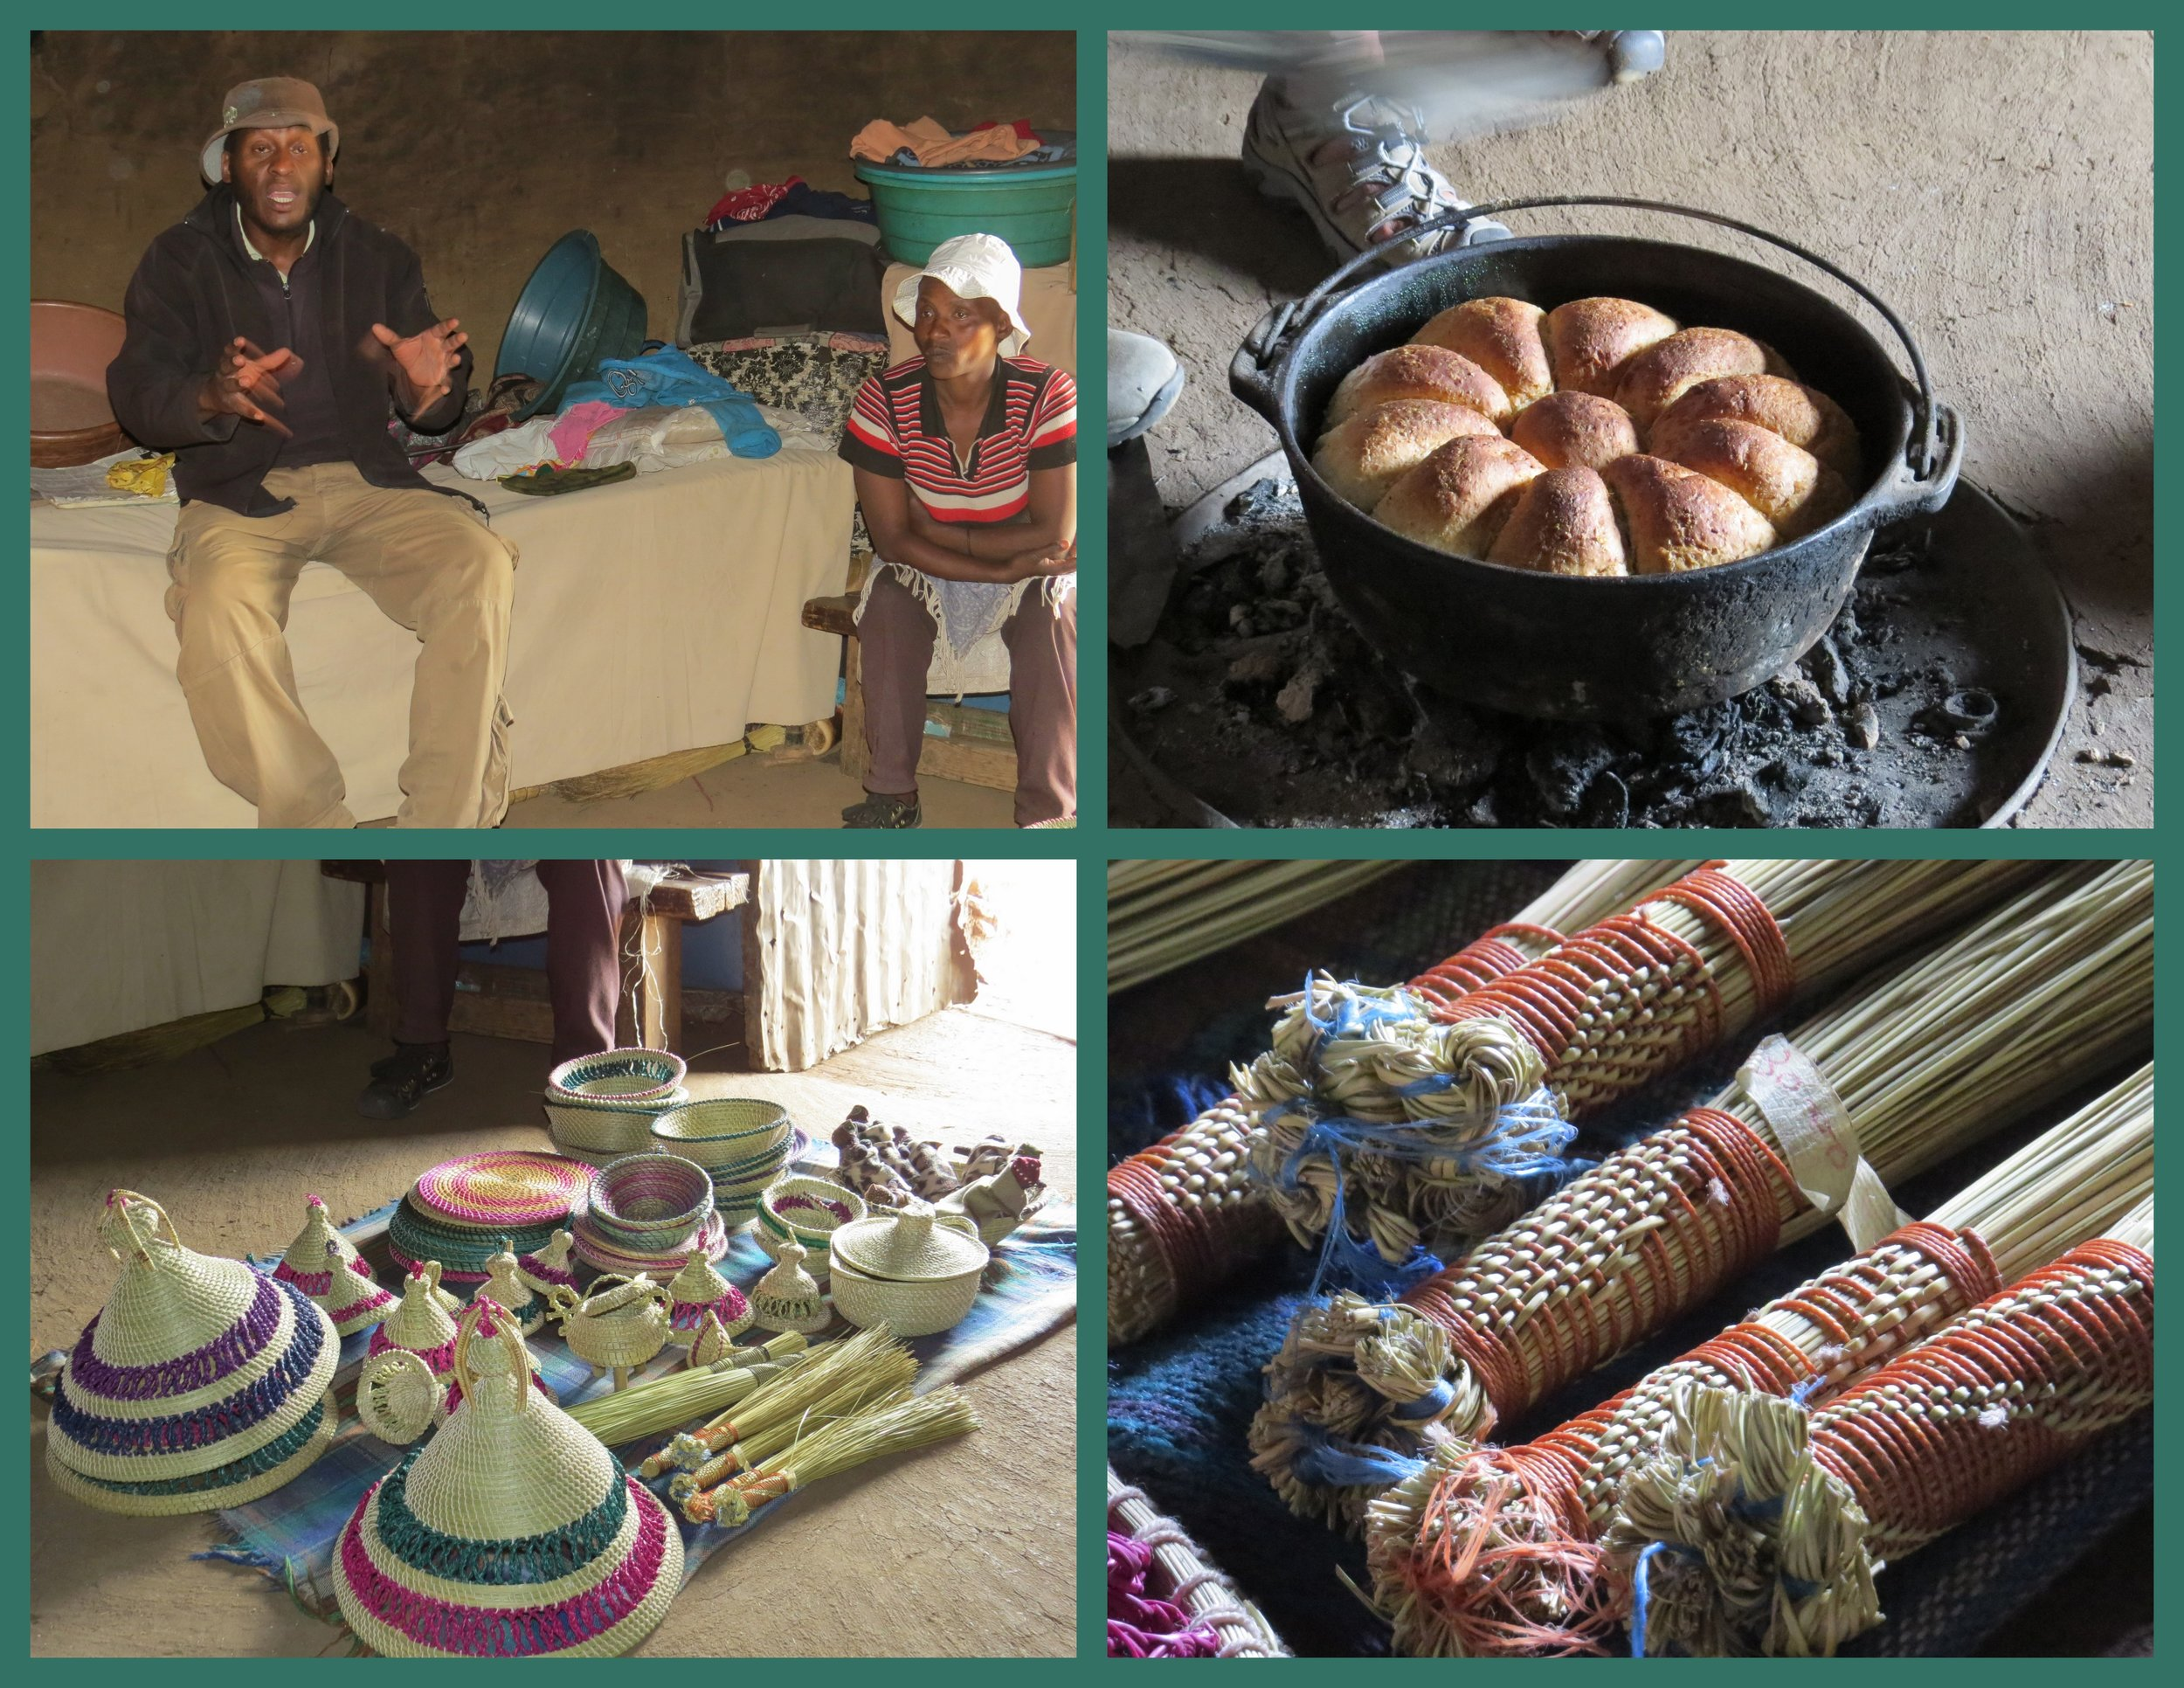 A morning snack and handmade crafts inMe Fitelena's hut.